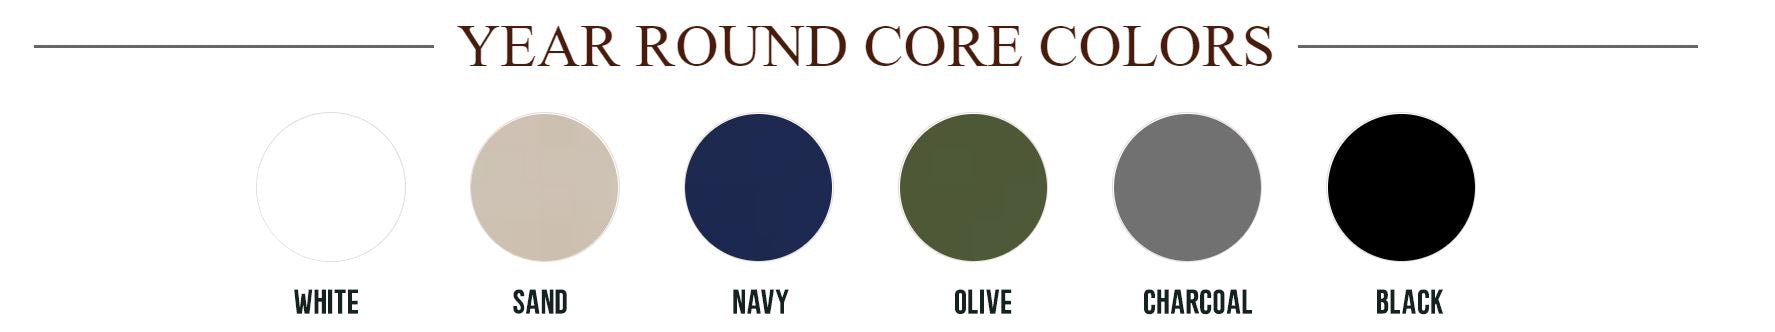 Year-Round Colors